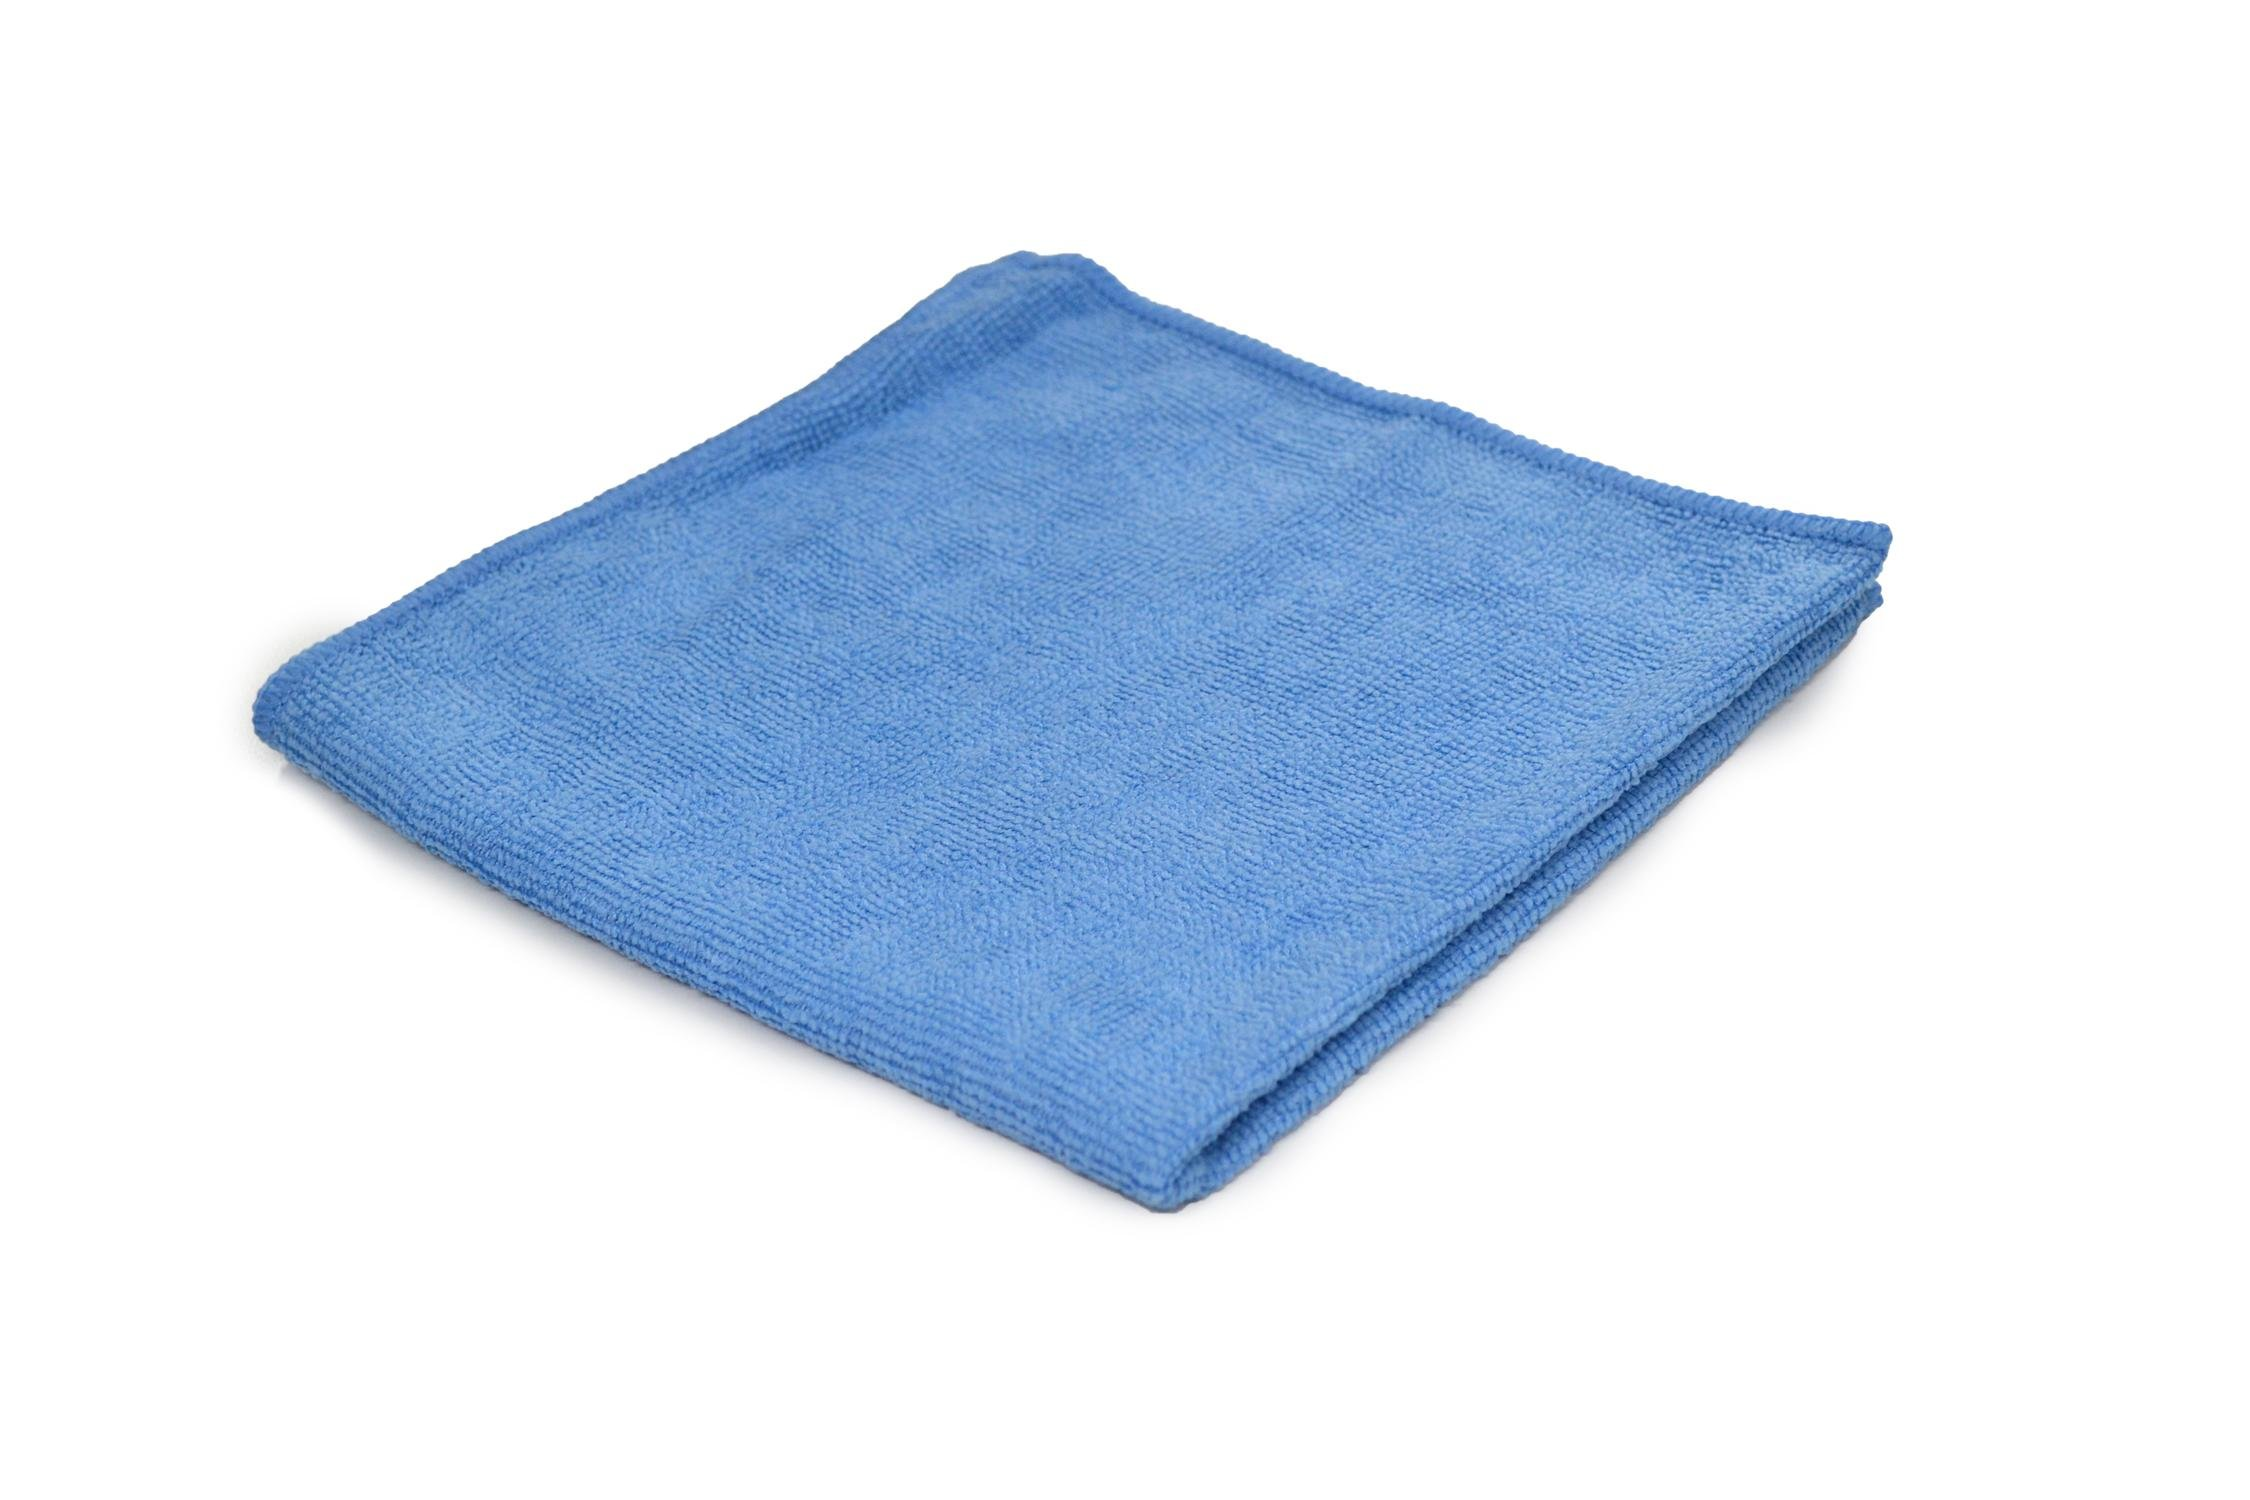 Pro-Clean Basics A73105 Microfiber General Purpose Cleaning Cloth, Heavy Weight, 12in x 12in: 240-Pack